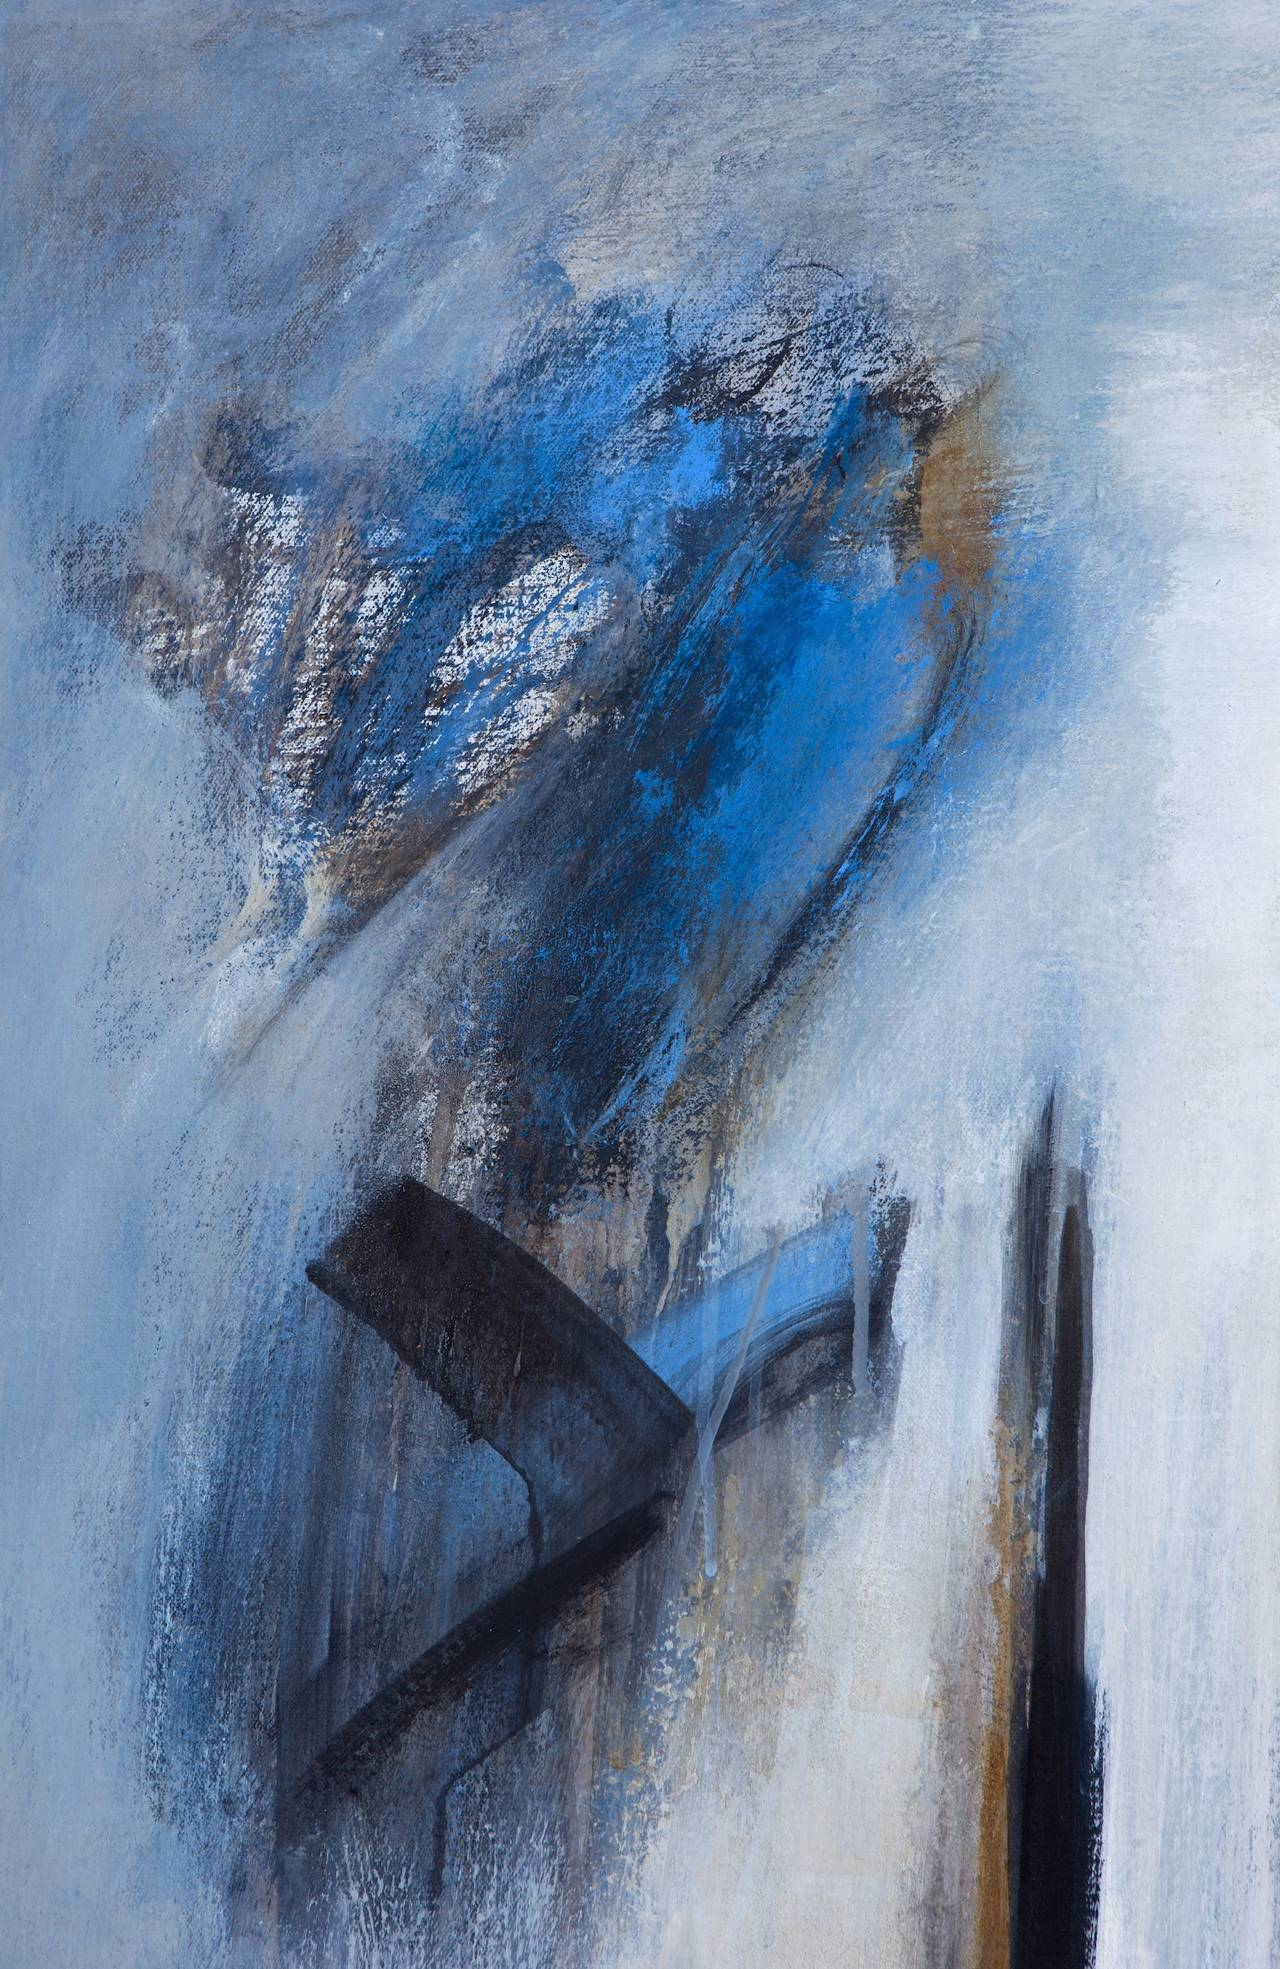 Stunning and masterful painting by Brazilian Artist Ivanilde Brunow, Silent Wood is from Brunow's series Icons of Nature. This mixed medium of acrylic, resin and charcoal with bold blues, black and white on canvas demonstrates a powerful abstract